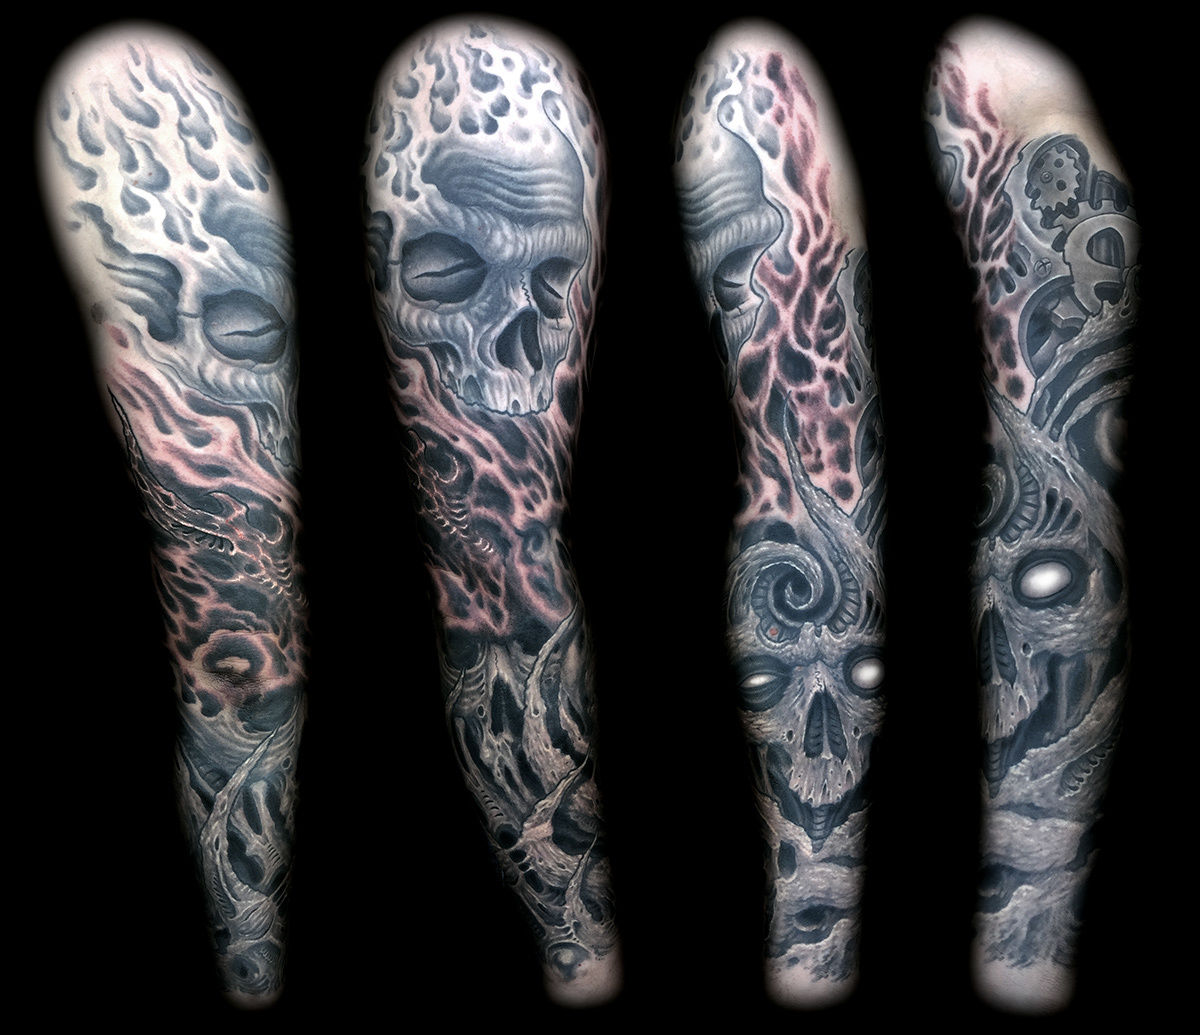 9e5d4c905e96e joeriley:biomech-skull-sleeve-biomech-biomechanical-skulls-sleeve